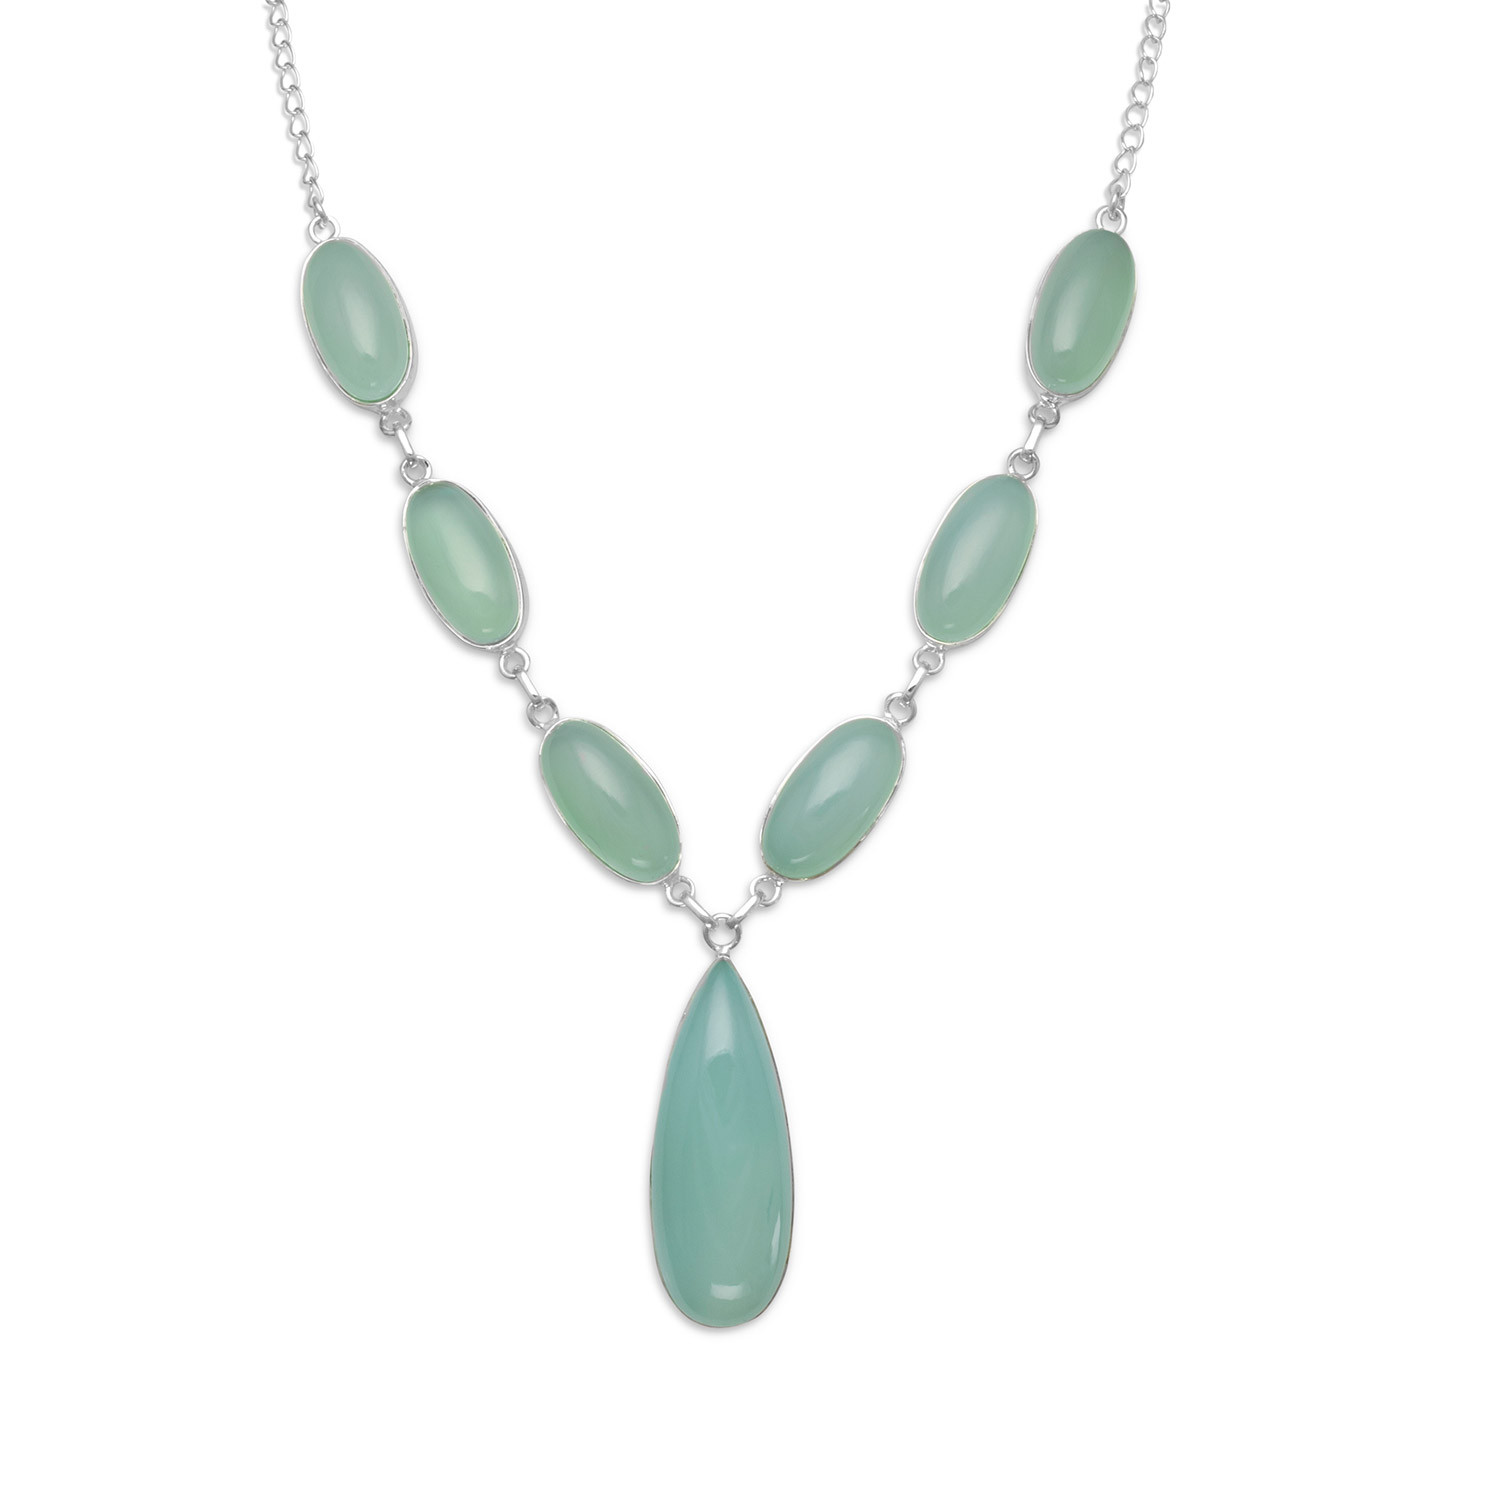 Sea Green Chalcedony Seven Stone Sterling Silver Necklace by unknown